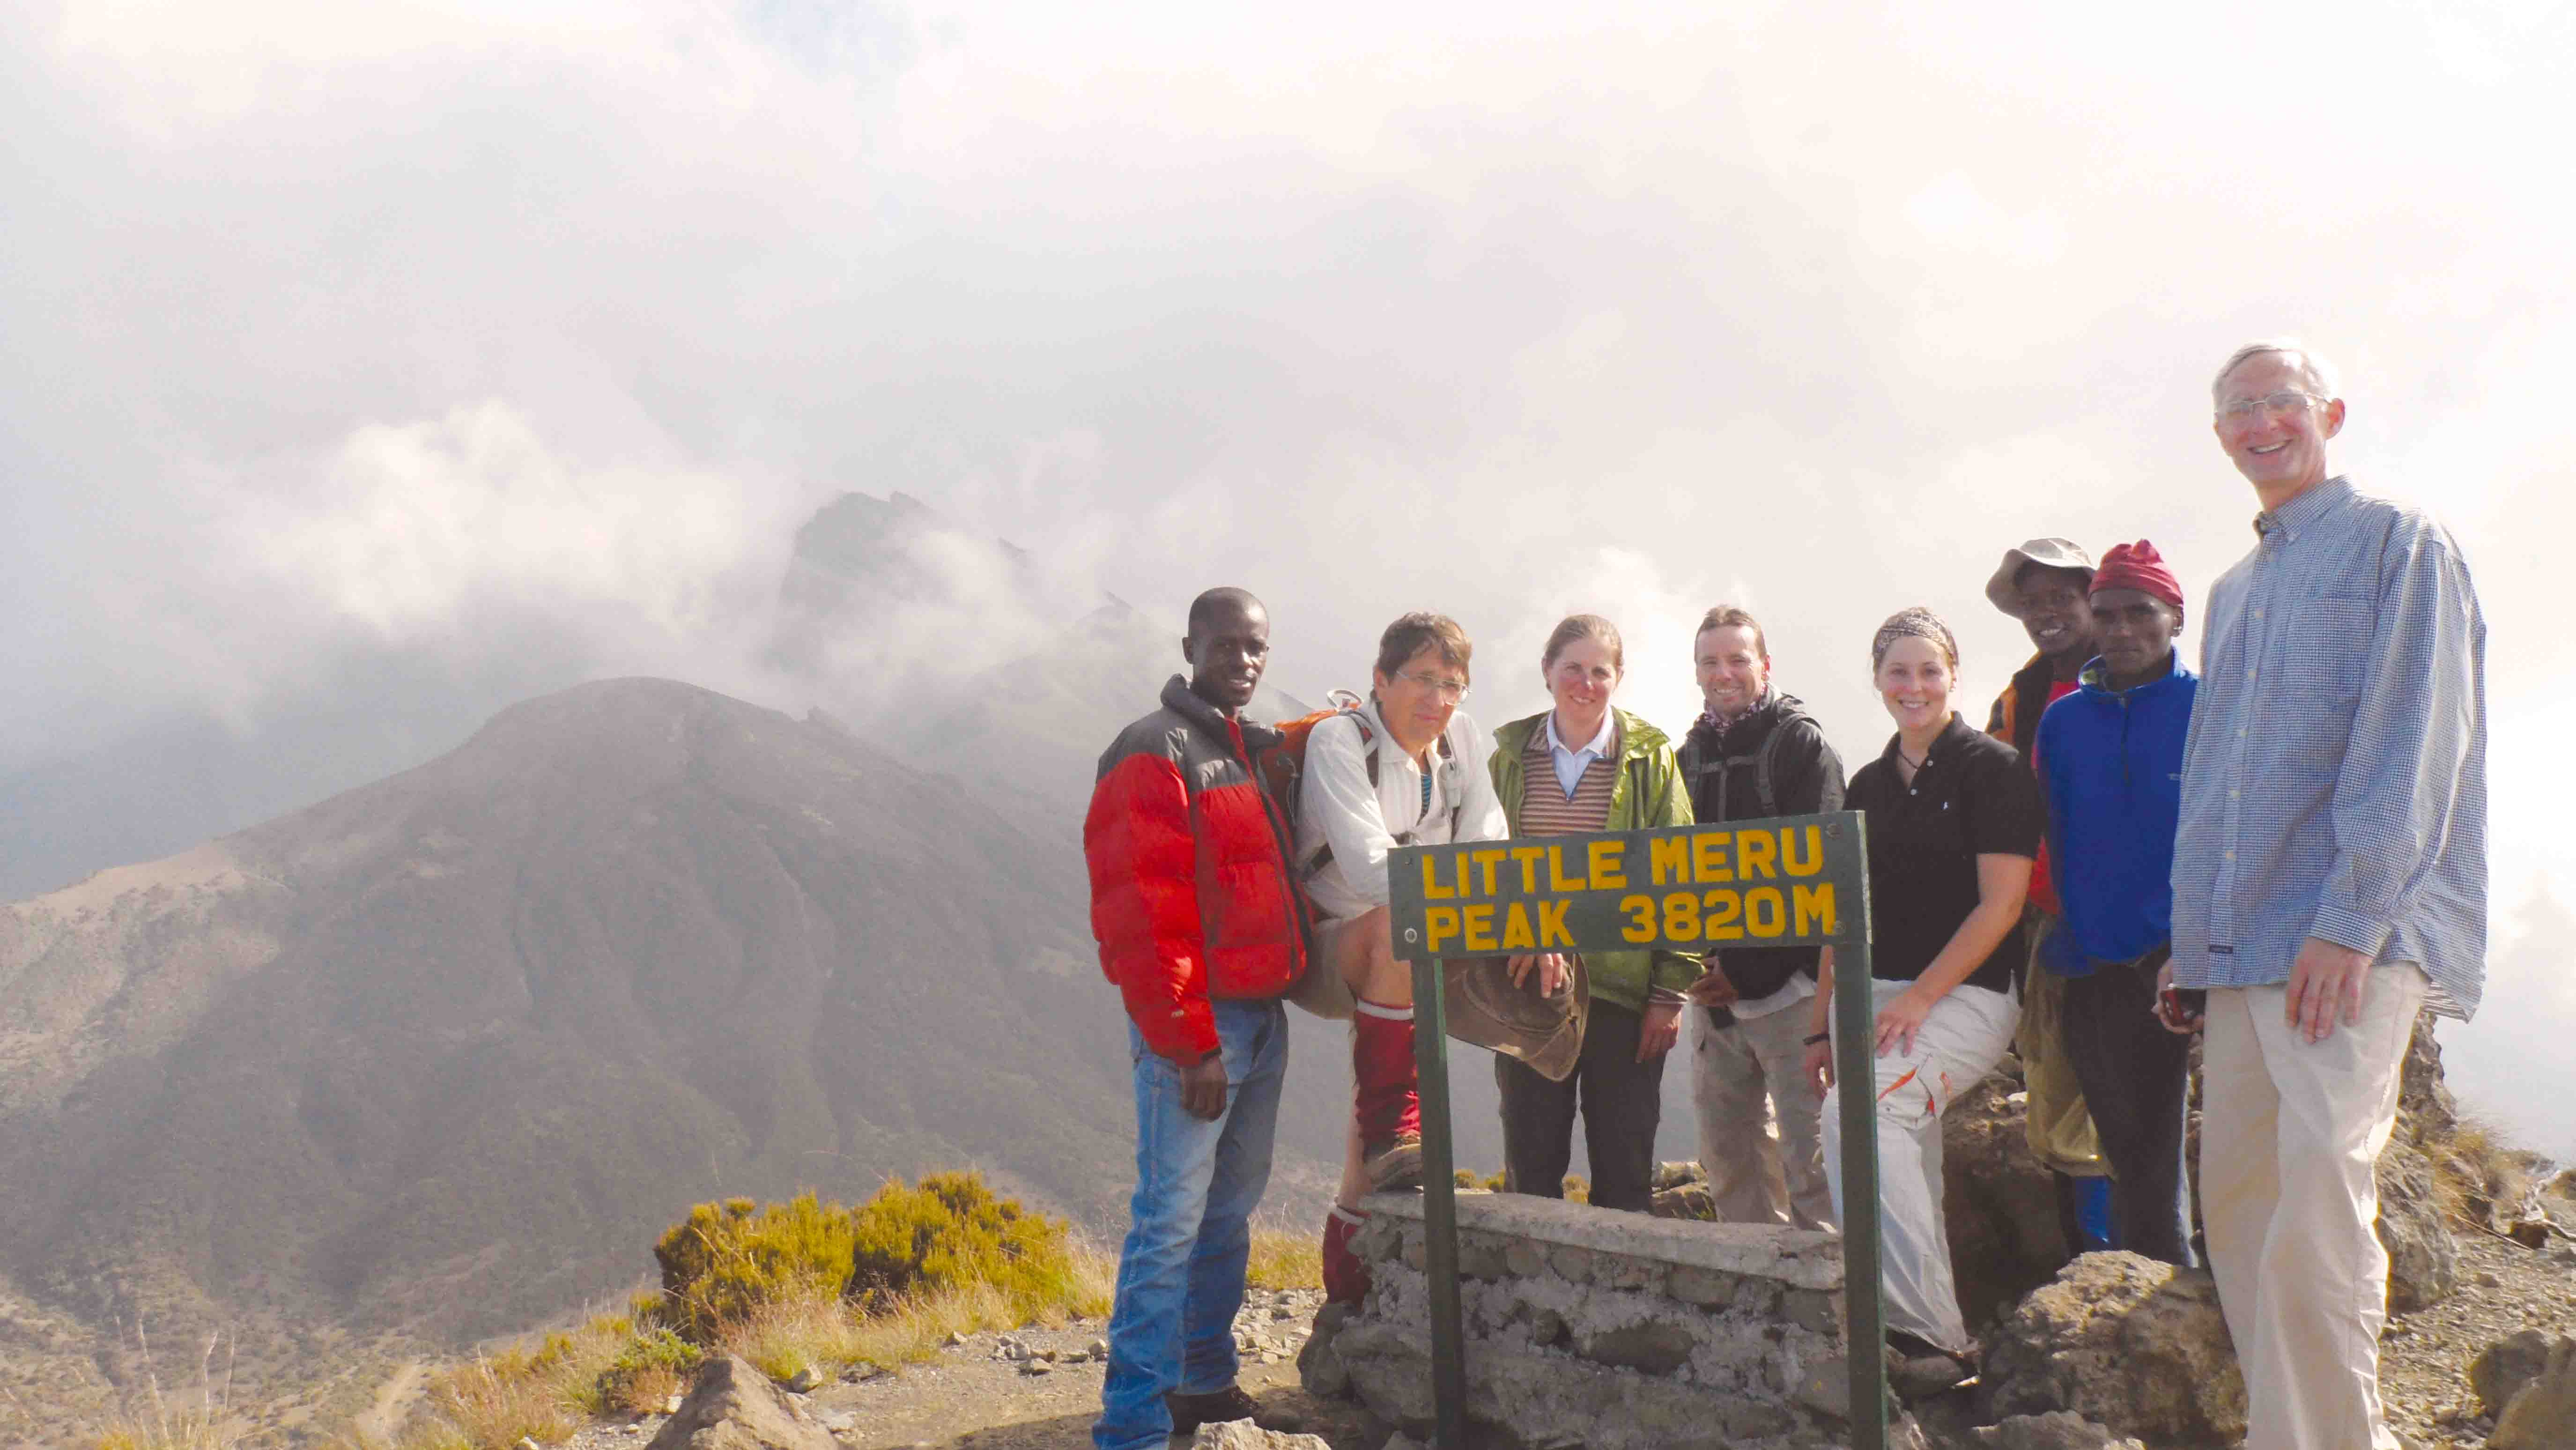 Our group with other locals at the peak of Mt. Meru.